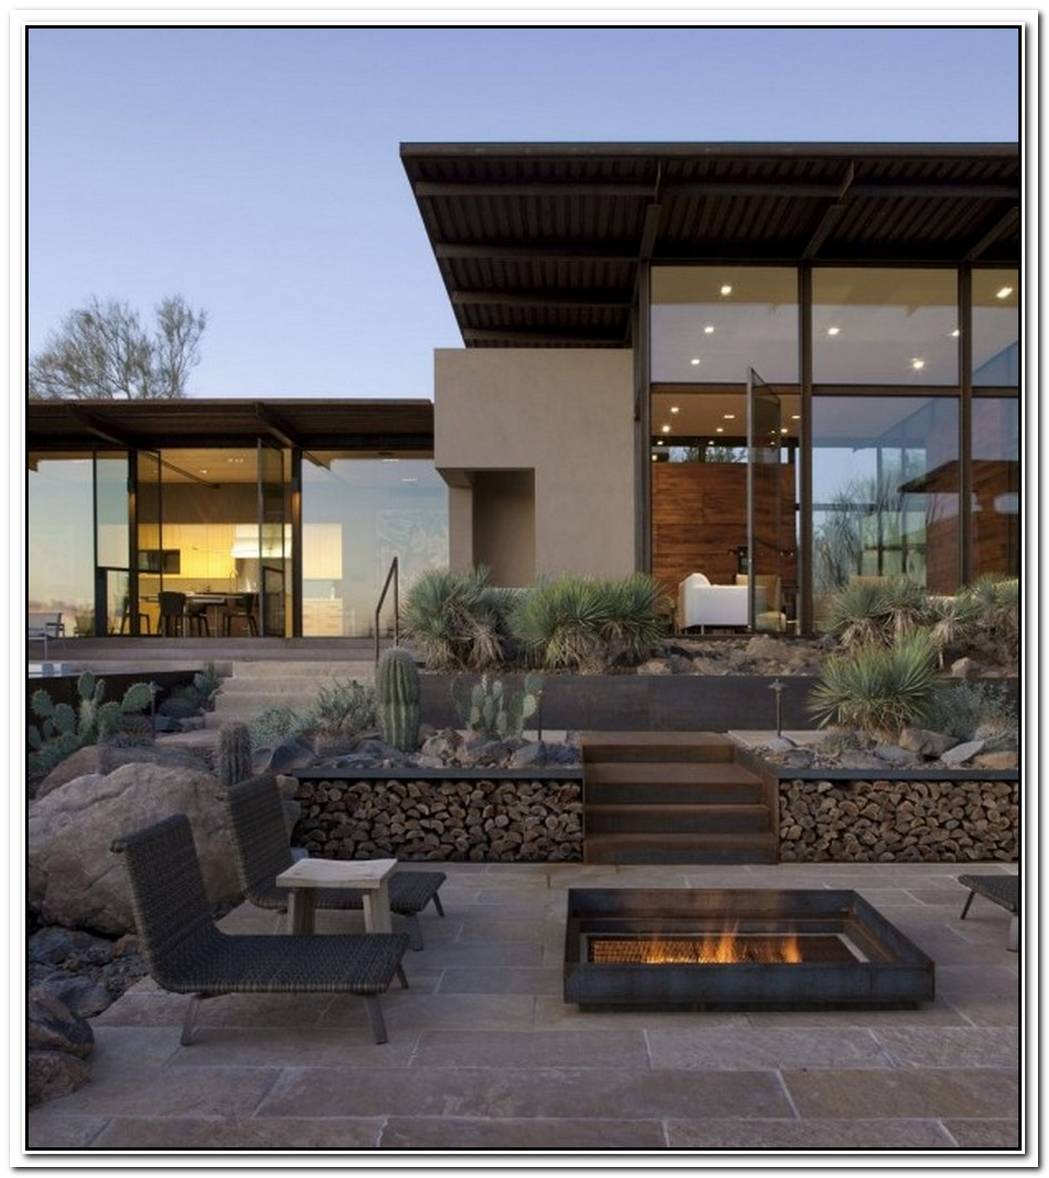 Brown ResidenceTransparent Beauty Designed To Take On The Desert Heat